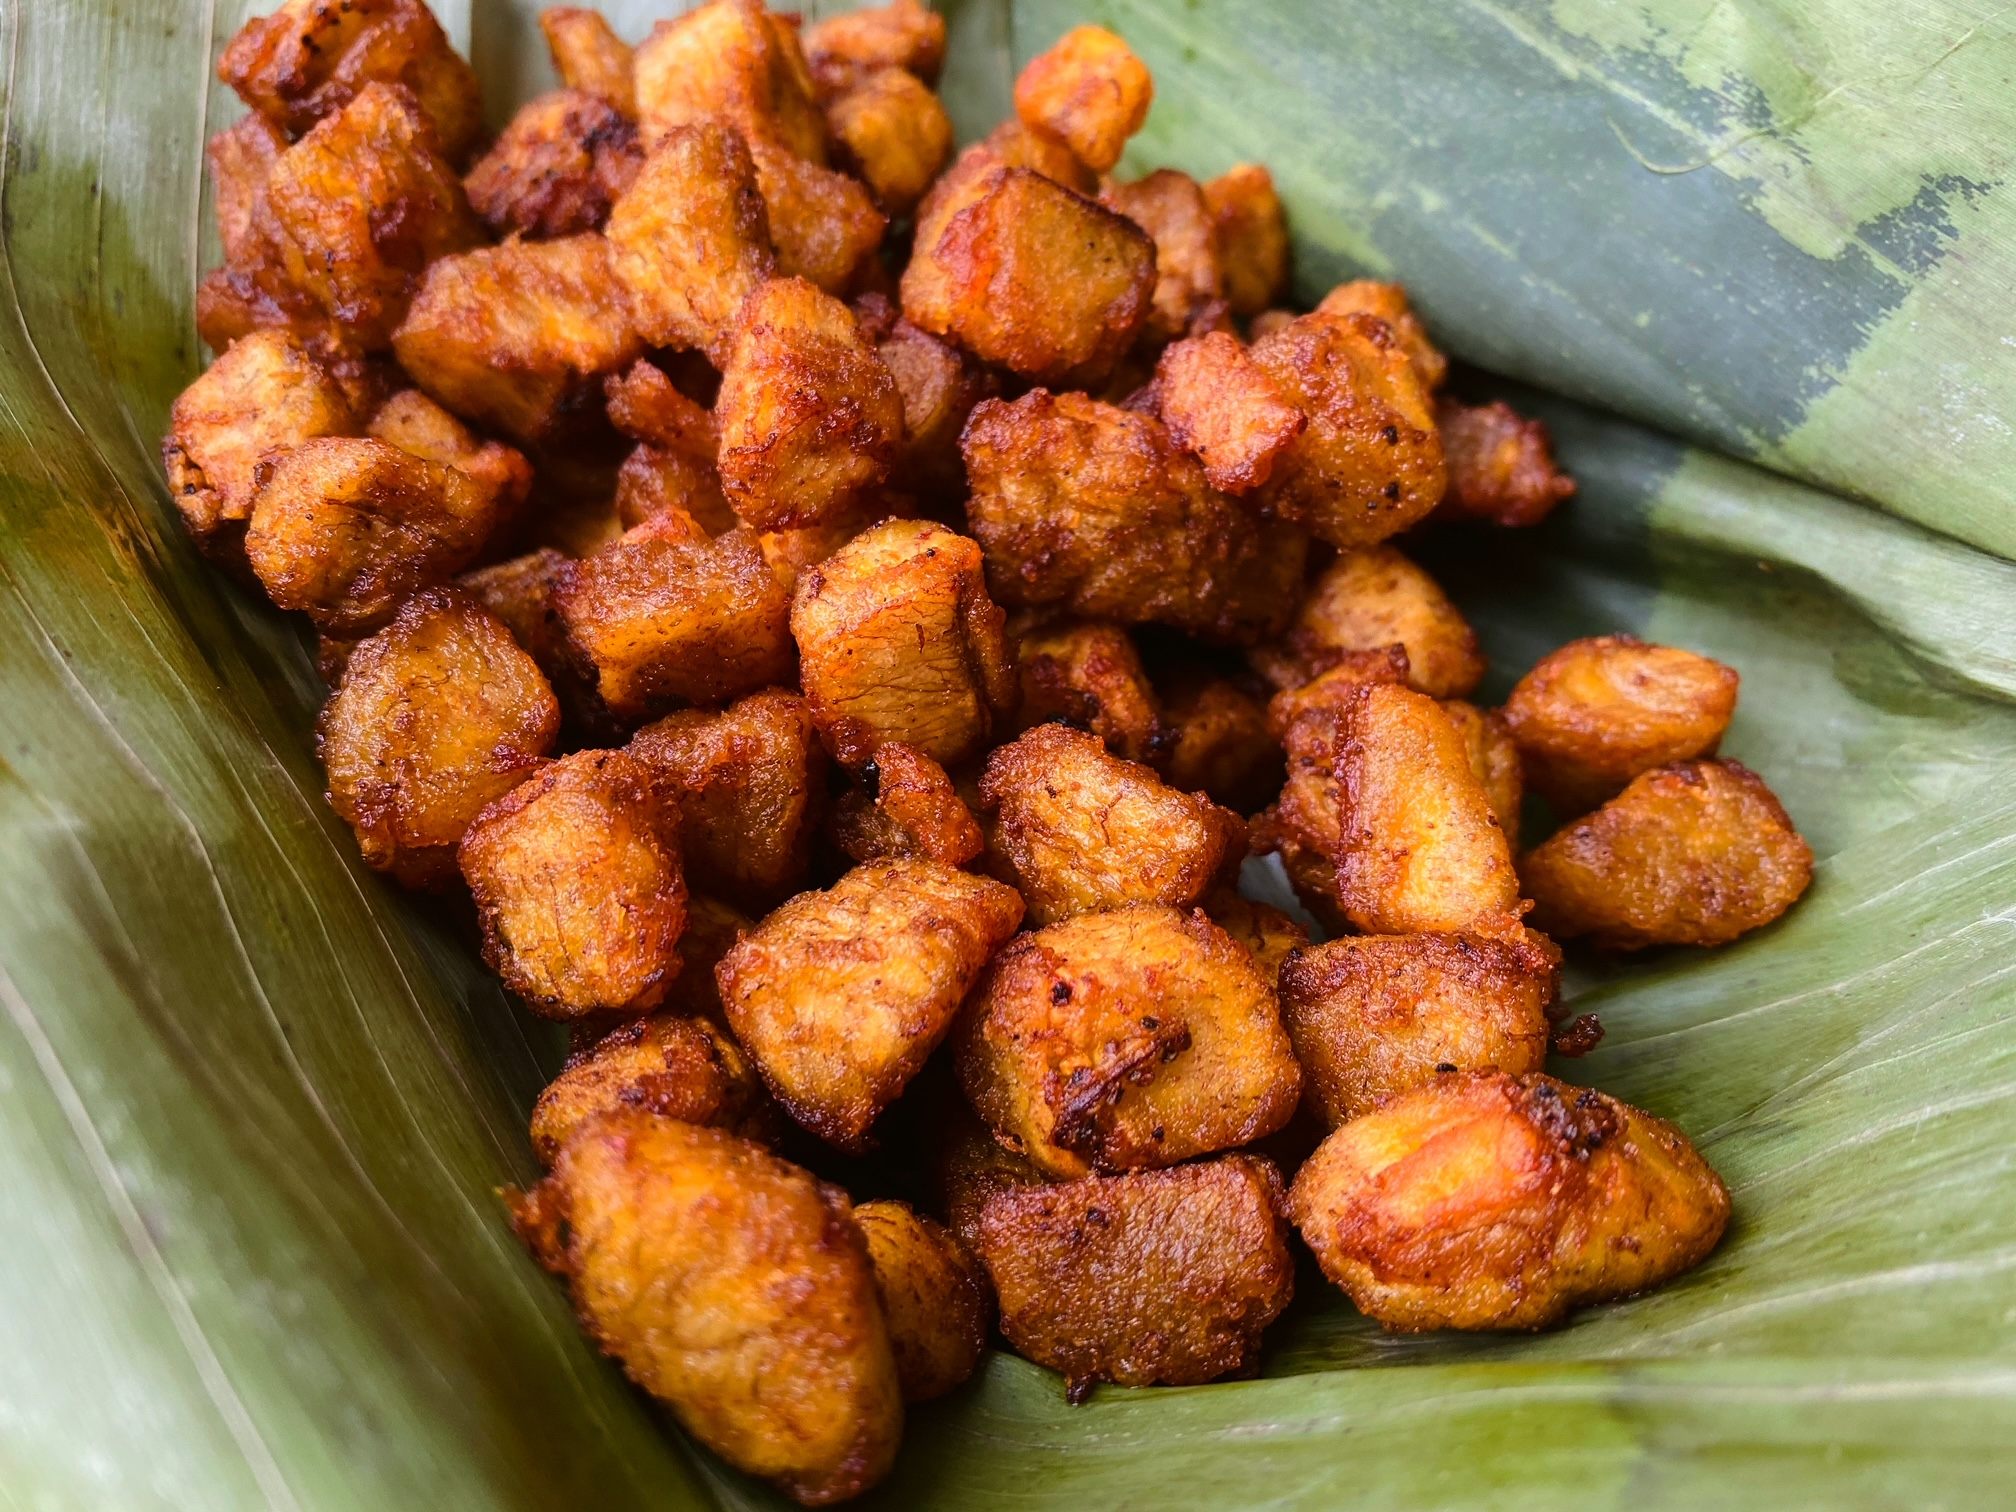 Fried brown chunks of plantains piled into a green banana leaf